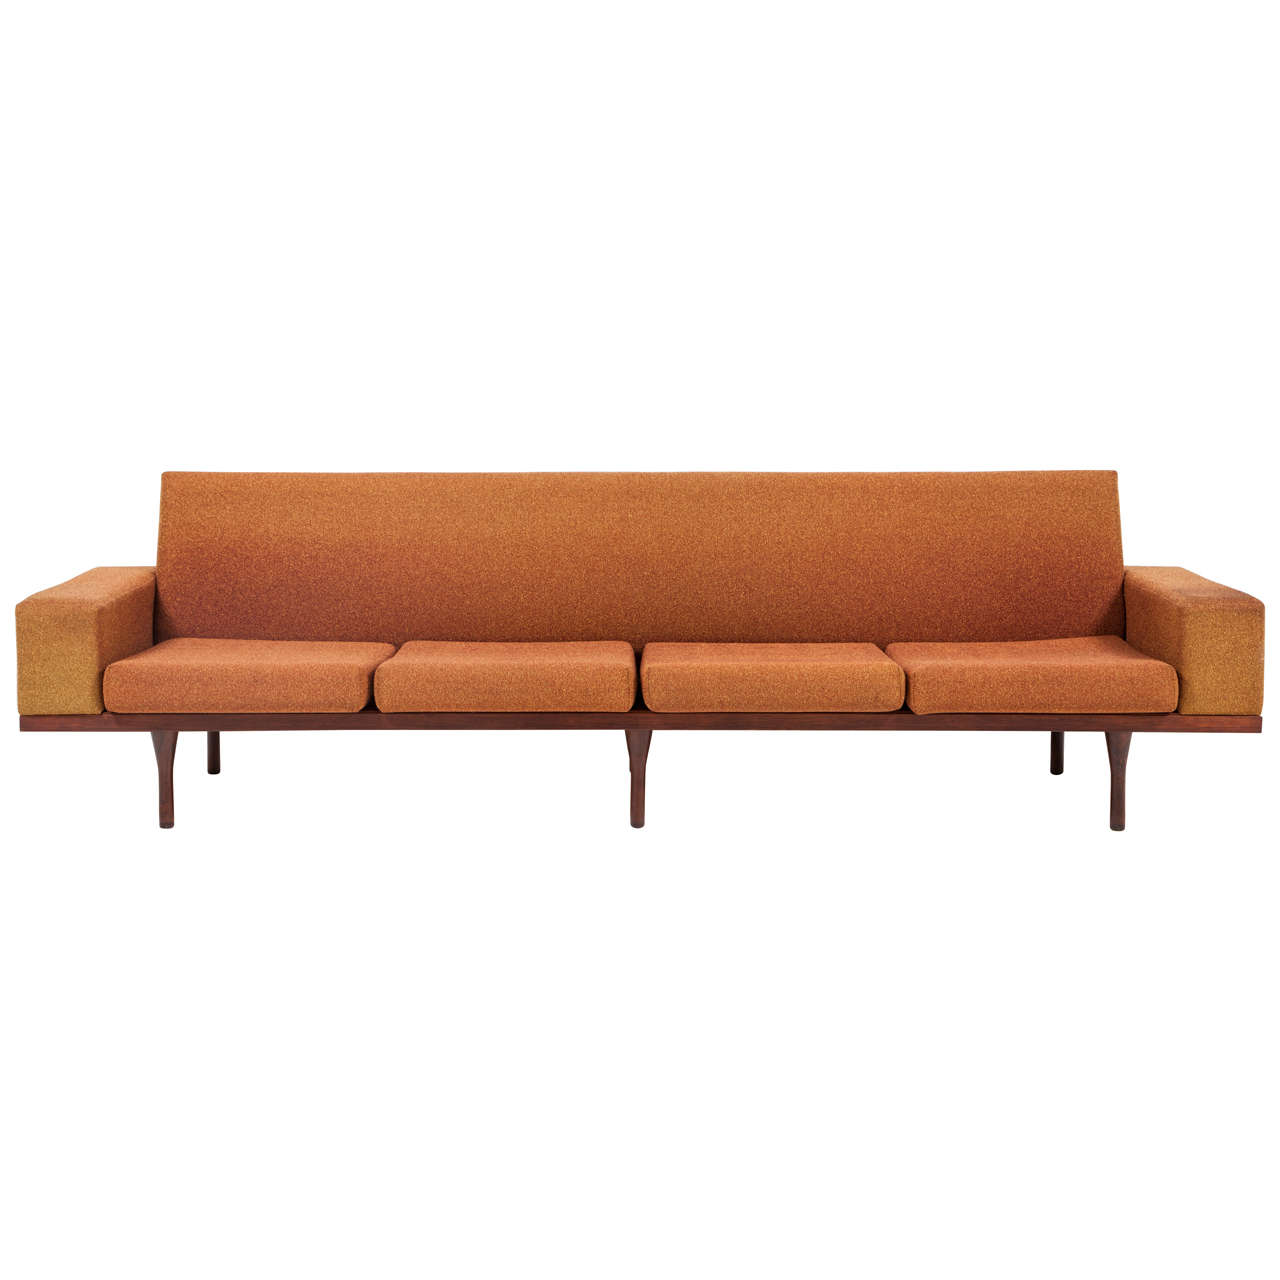 Rosewood Sofa by Illum Wikkelsø for Soren Willadsen 1